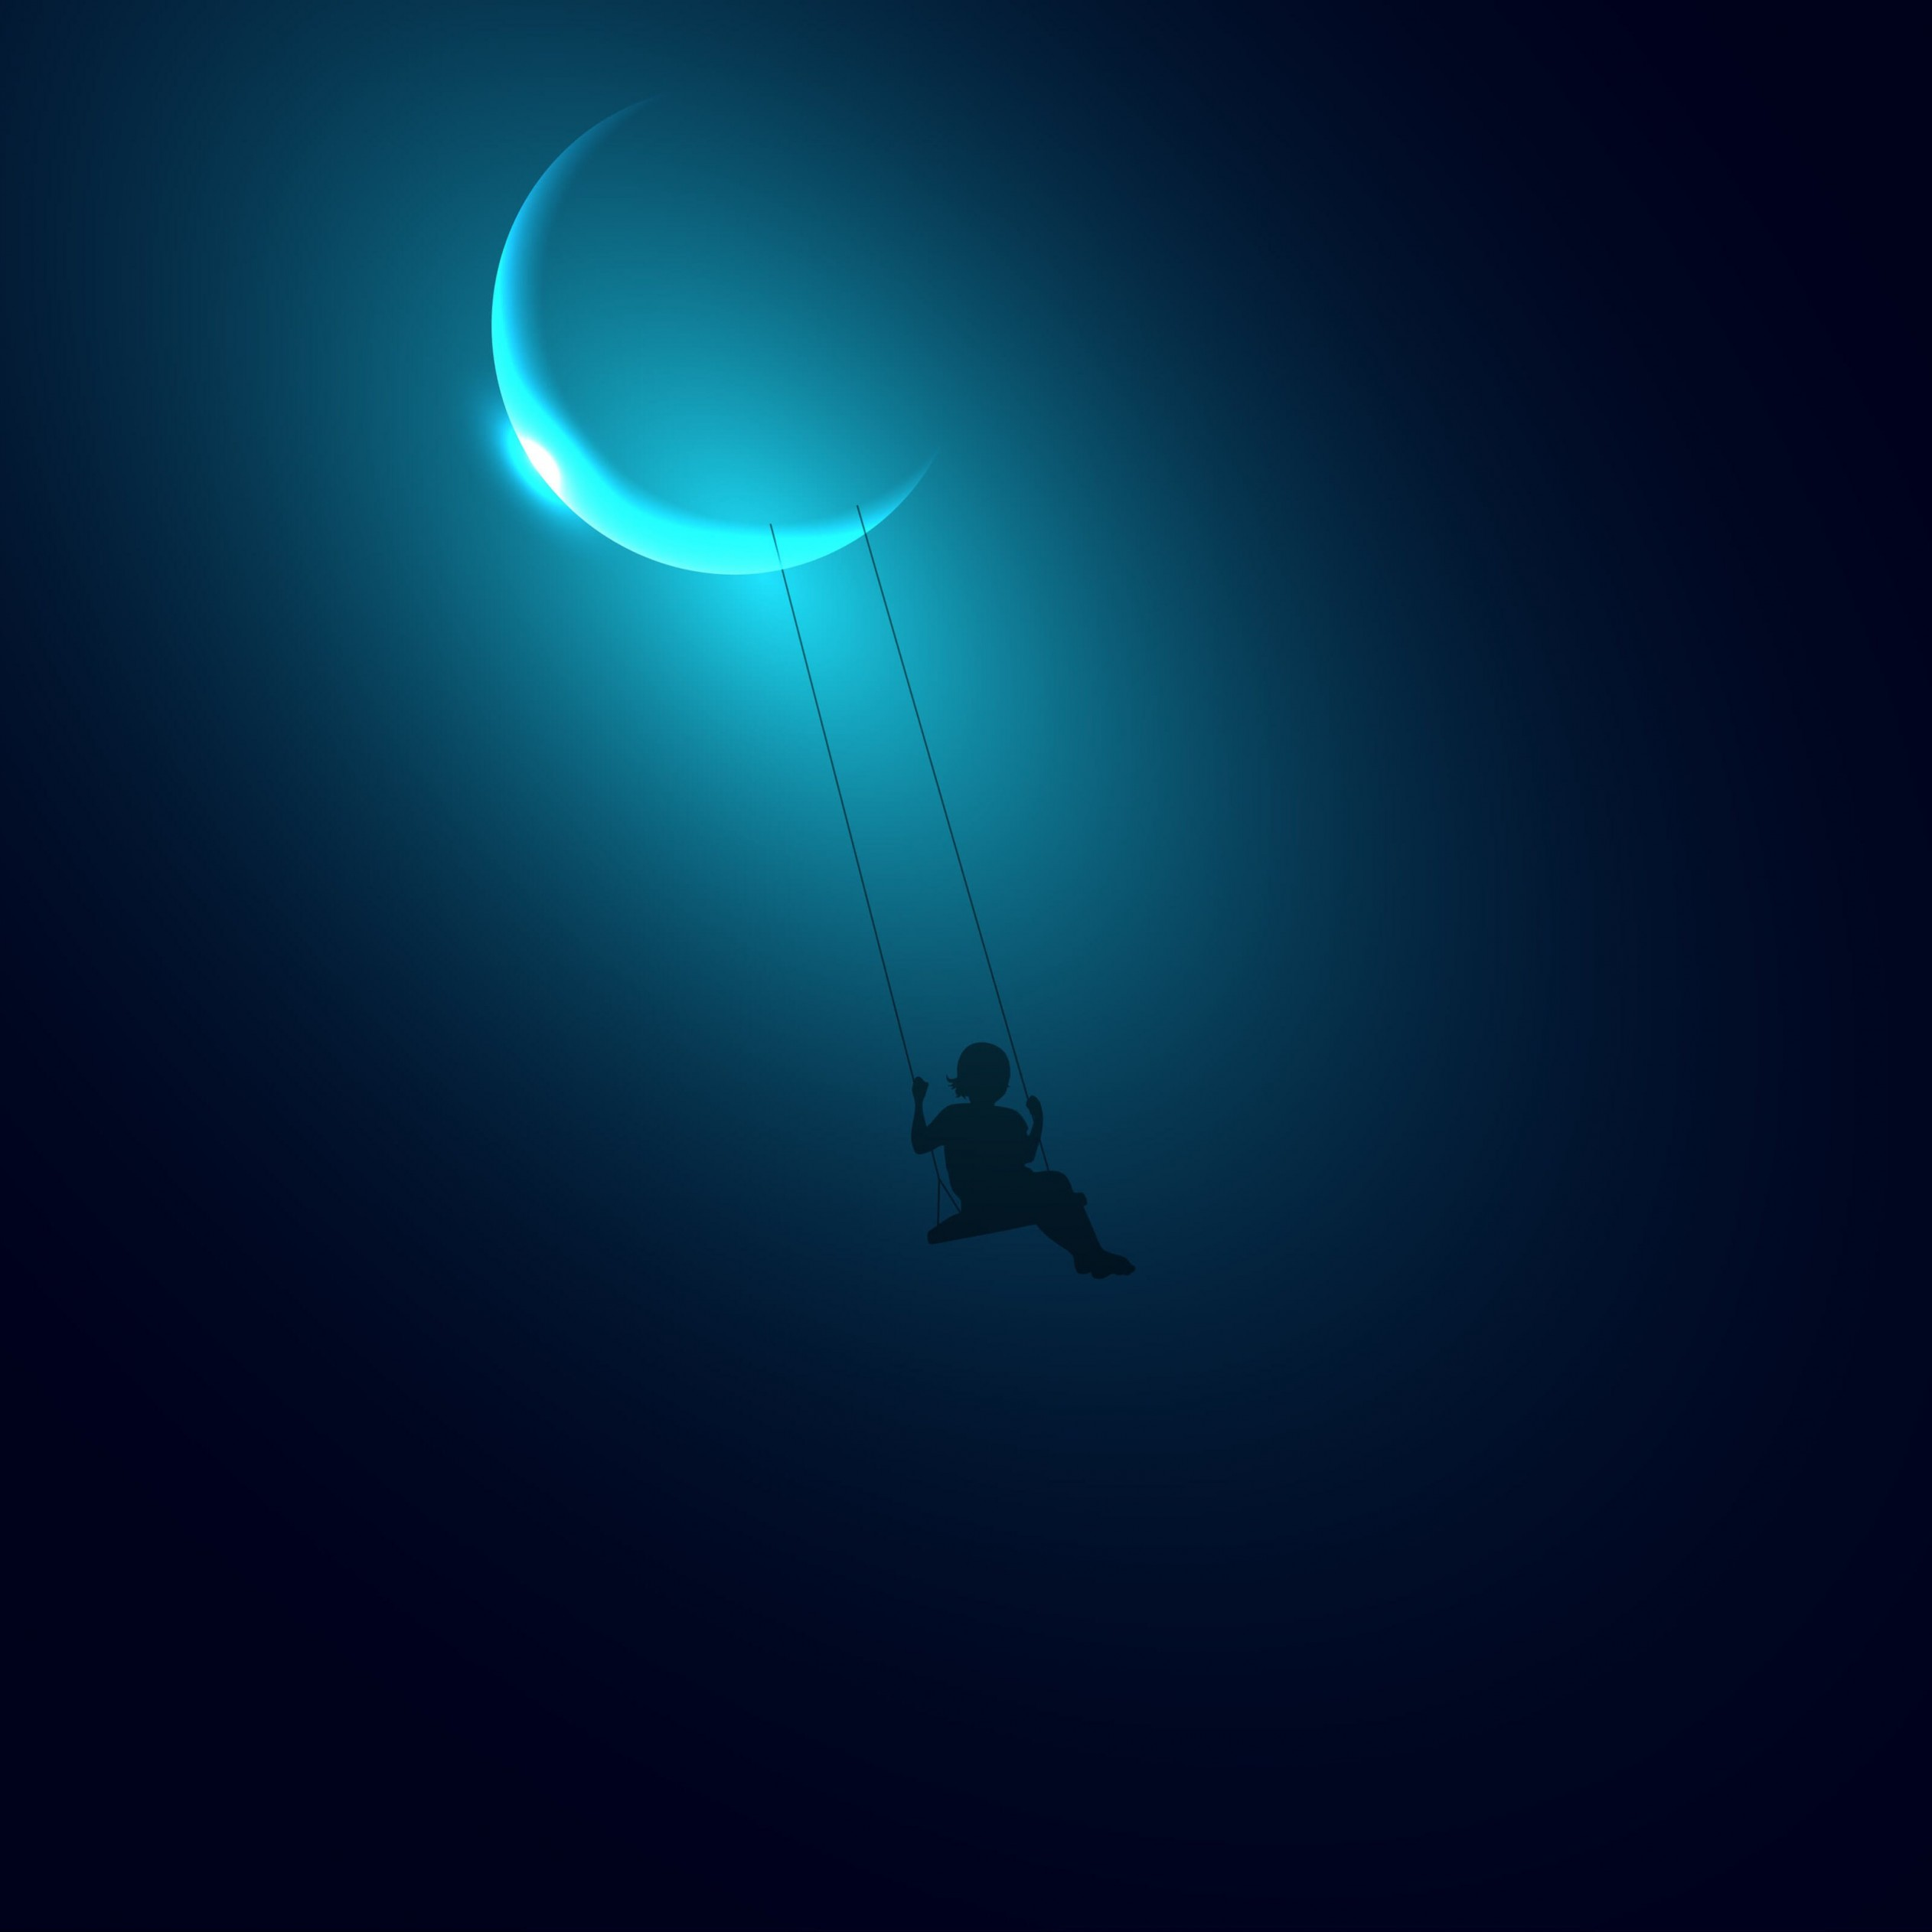 Little Girl Swinging on the Moon Wallpaper for Apple iPad 4